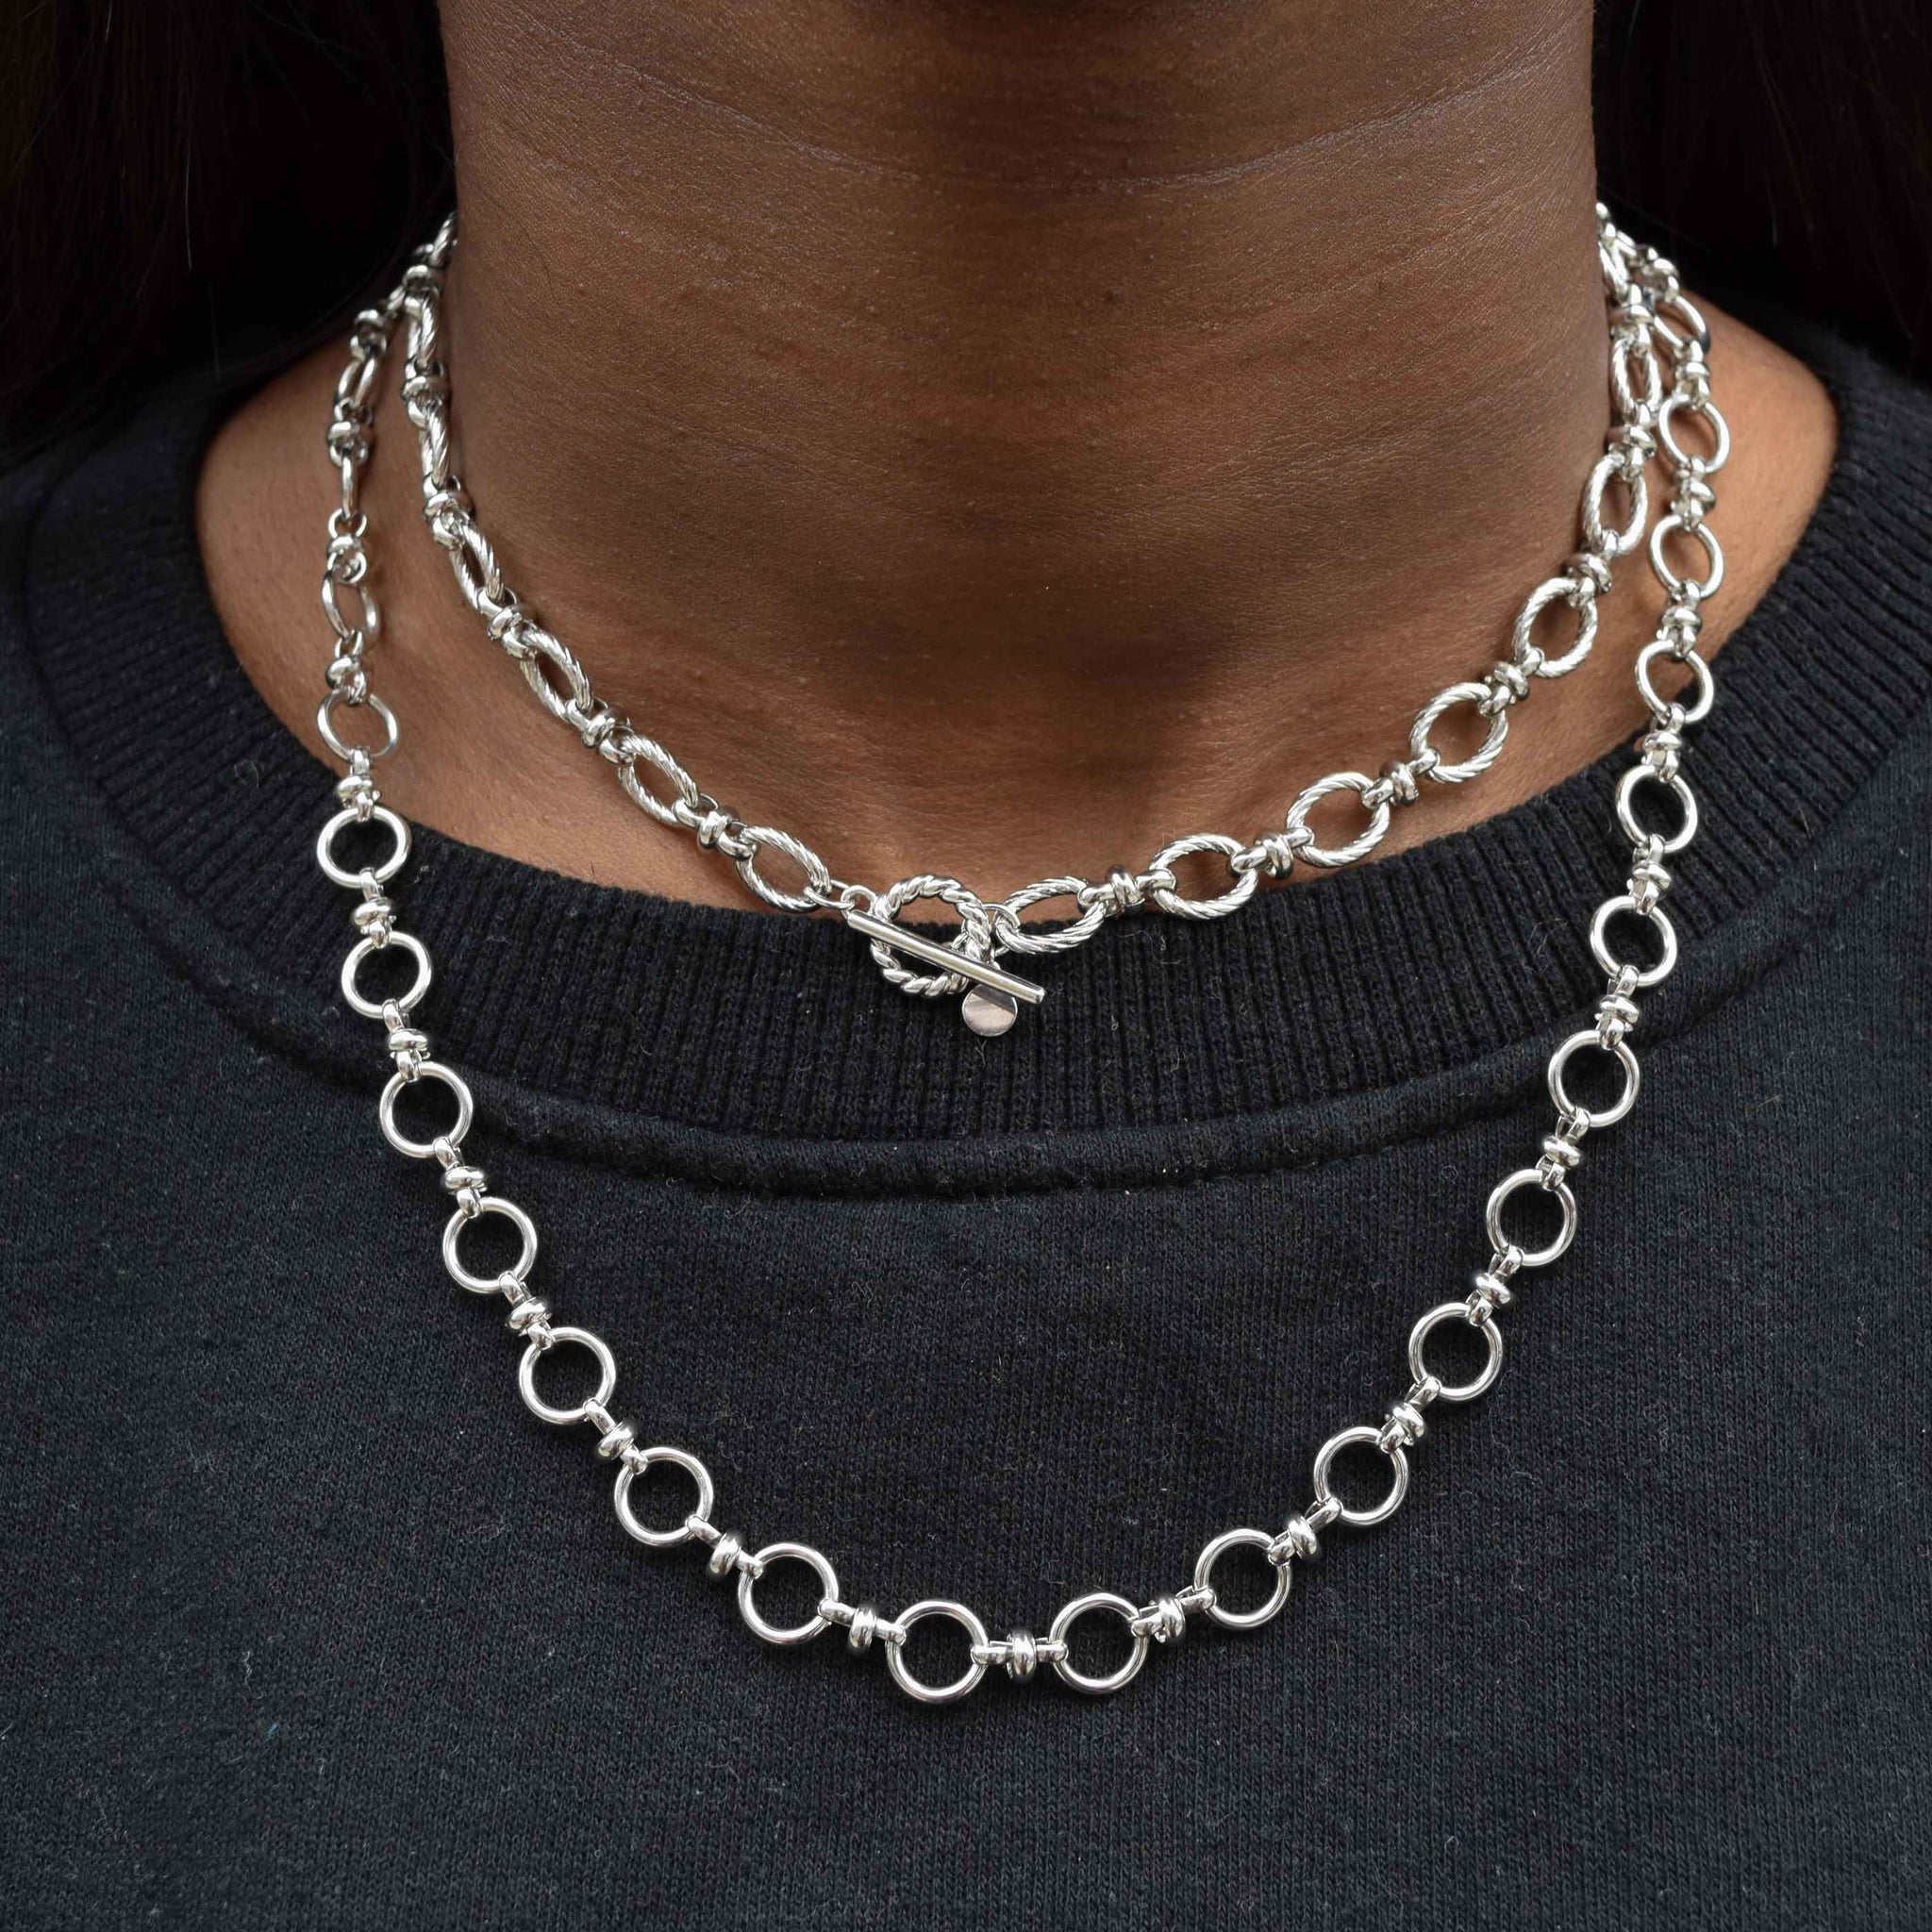 silver chunky chain necklaces worn